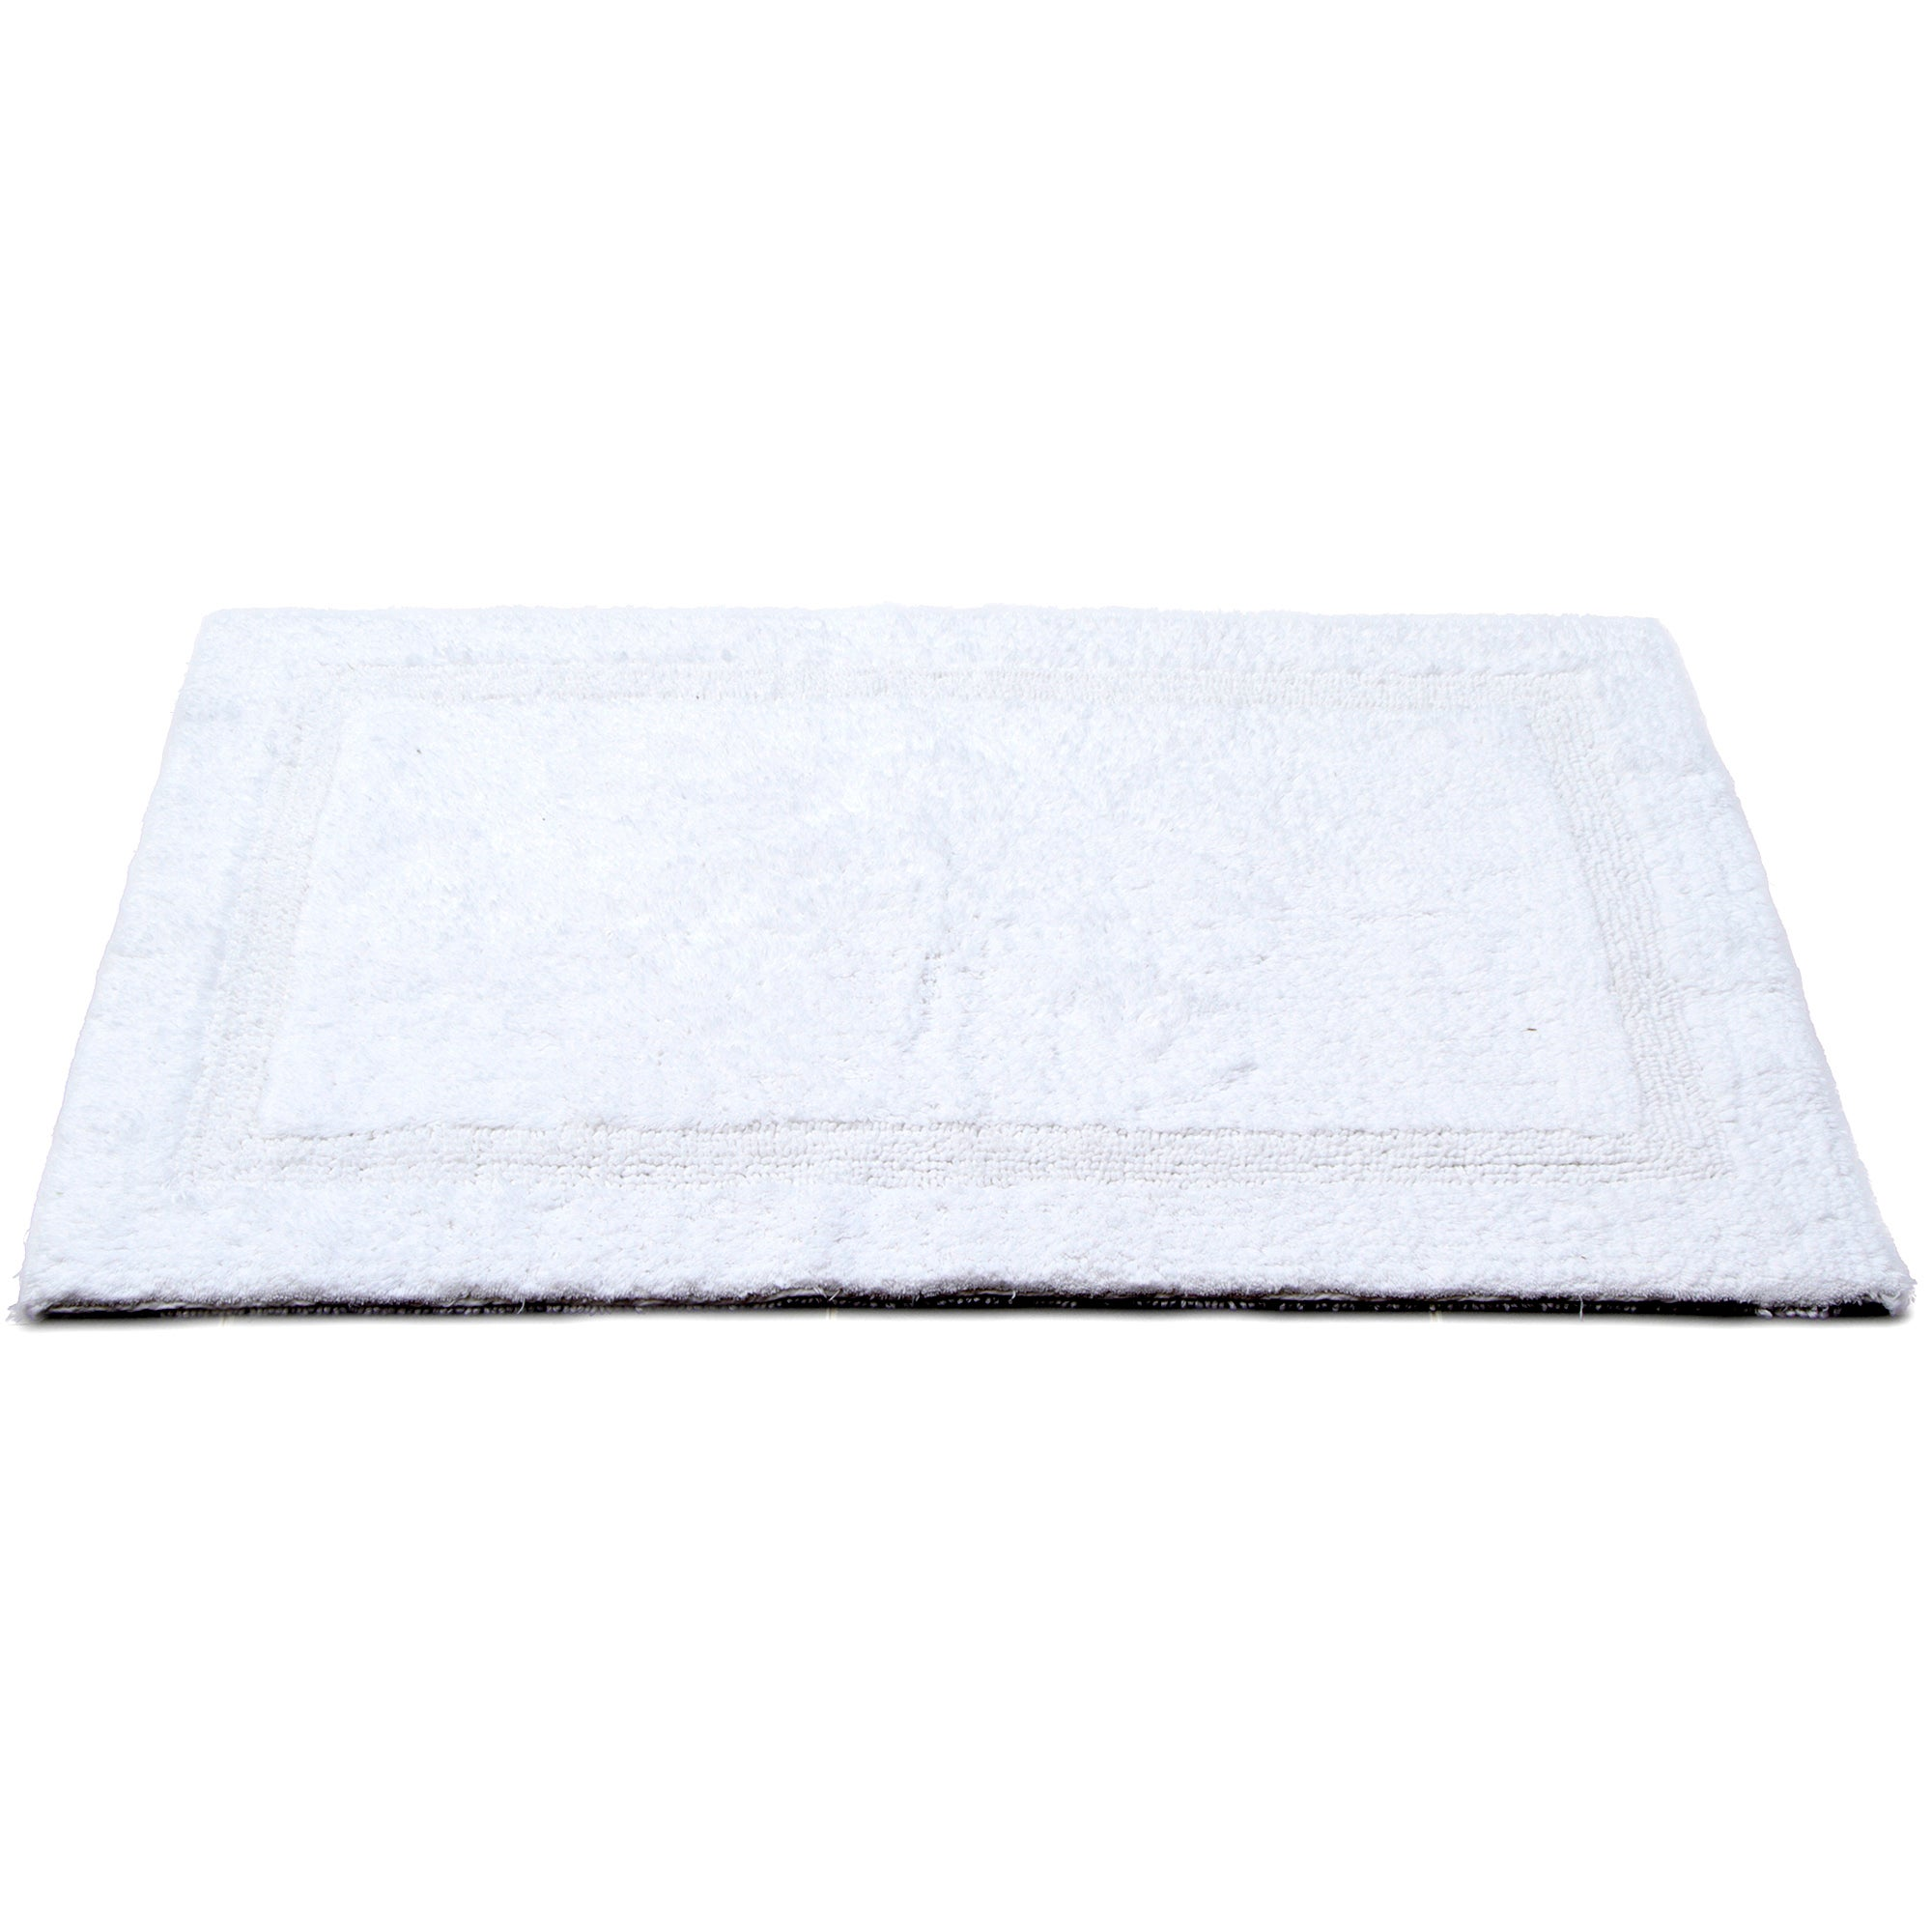 Dorma Reversible Bath Mat